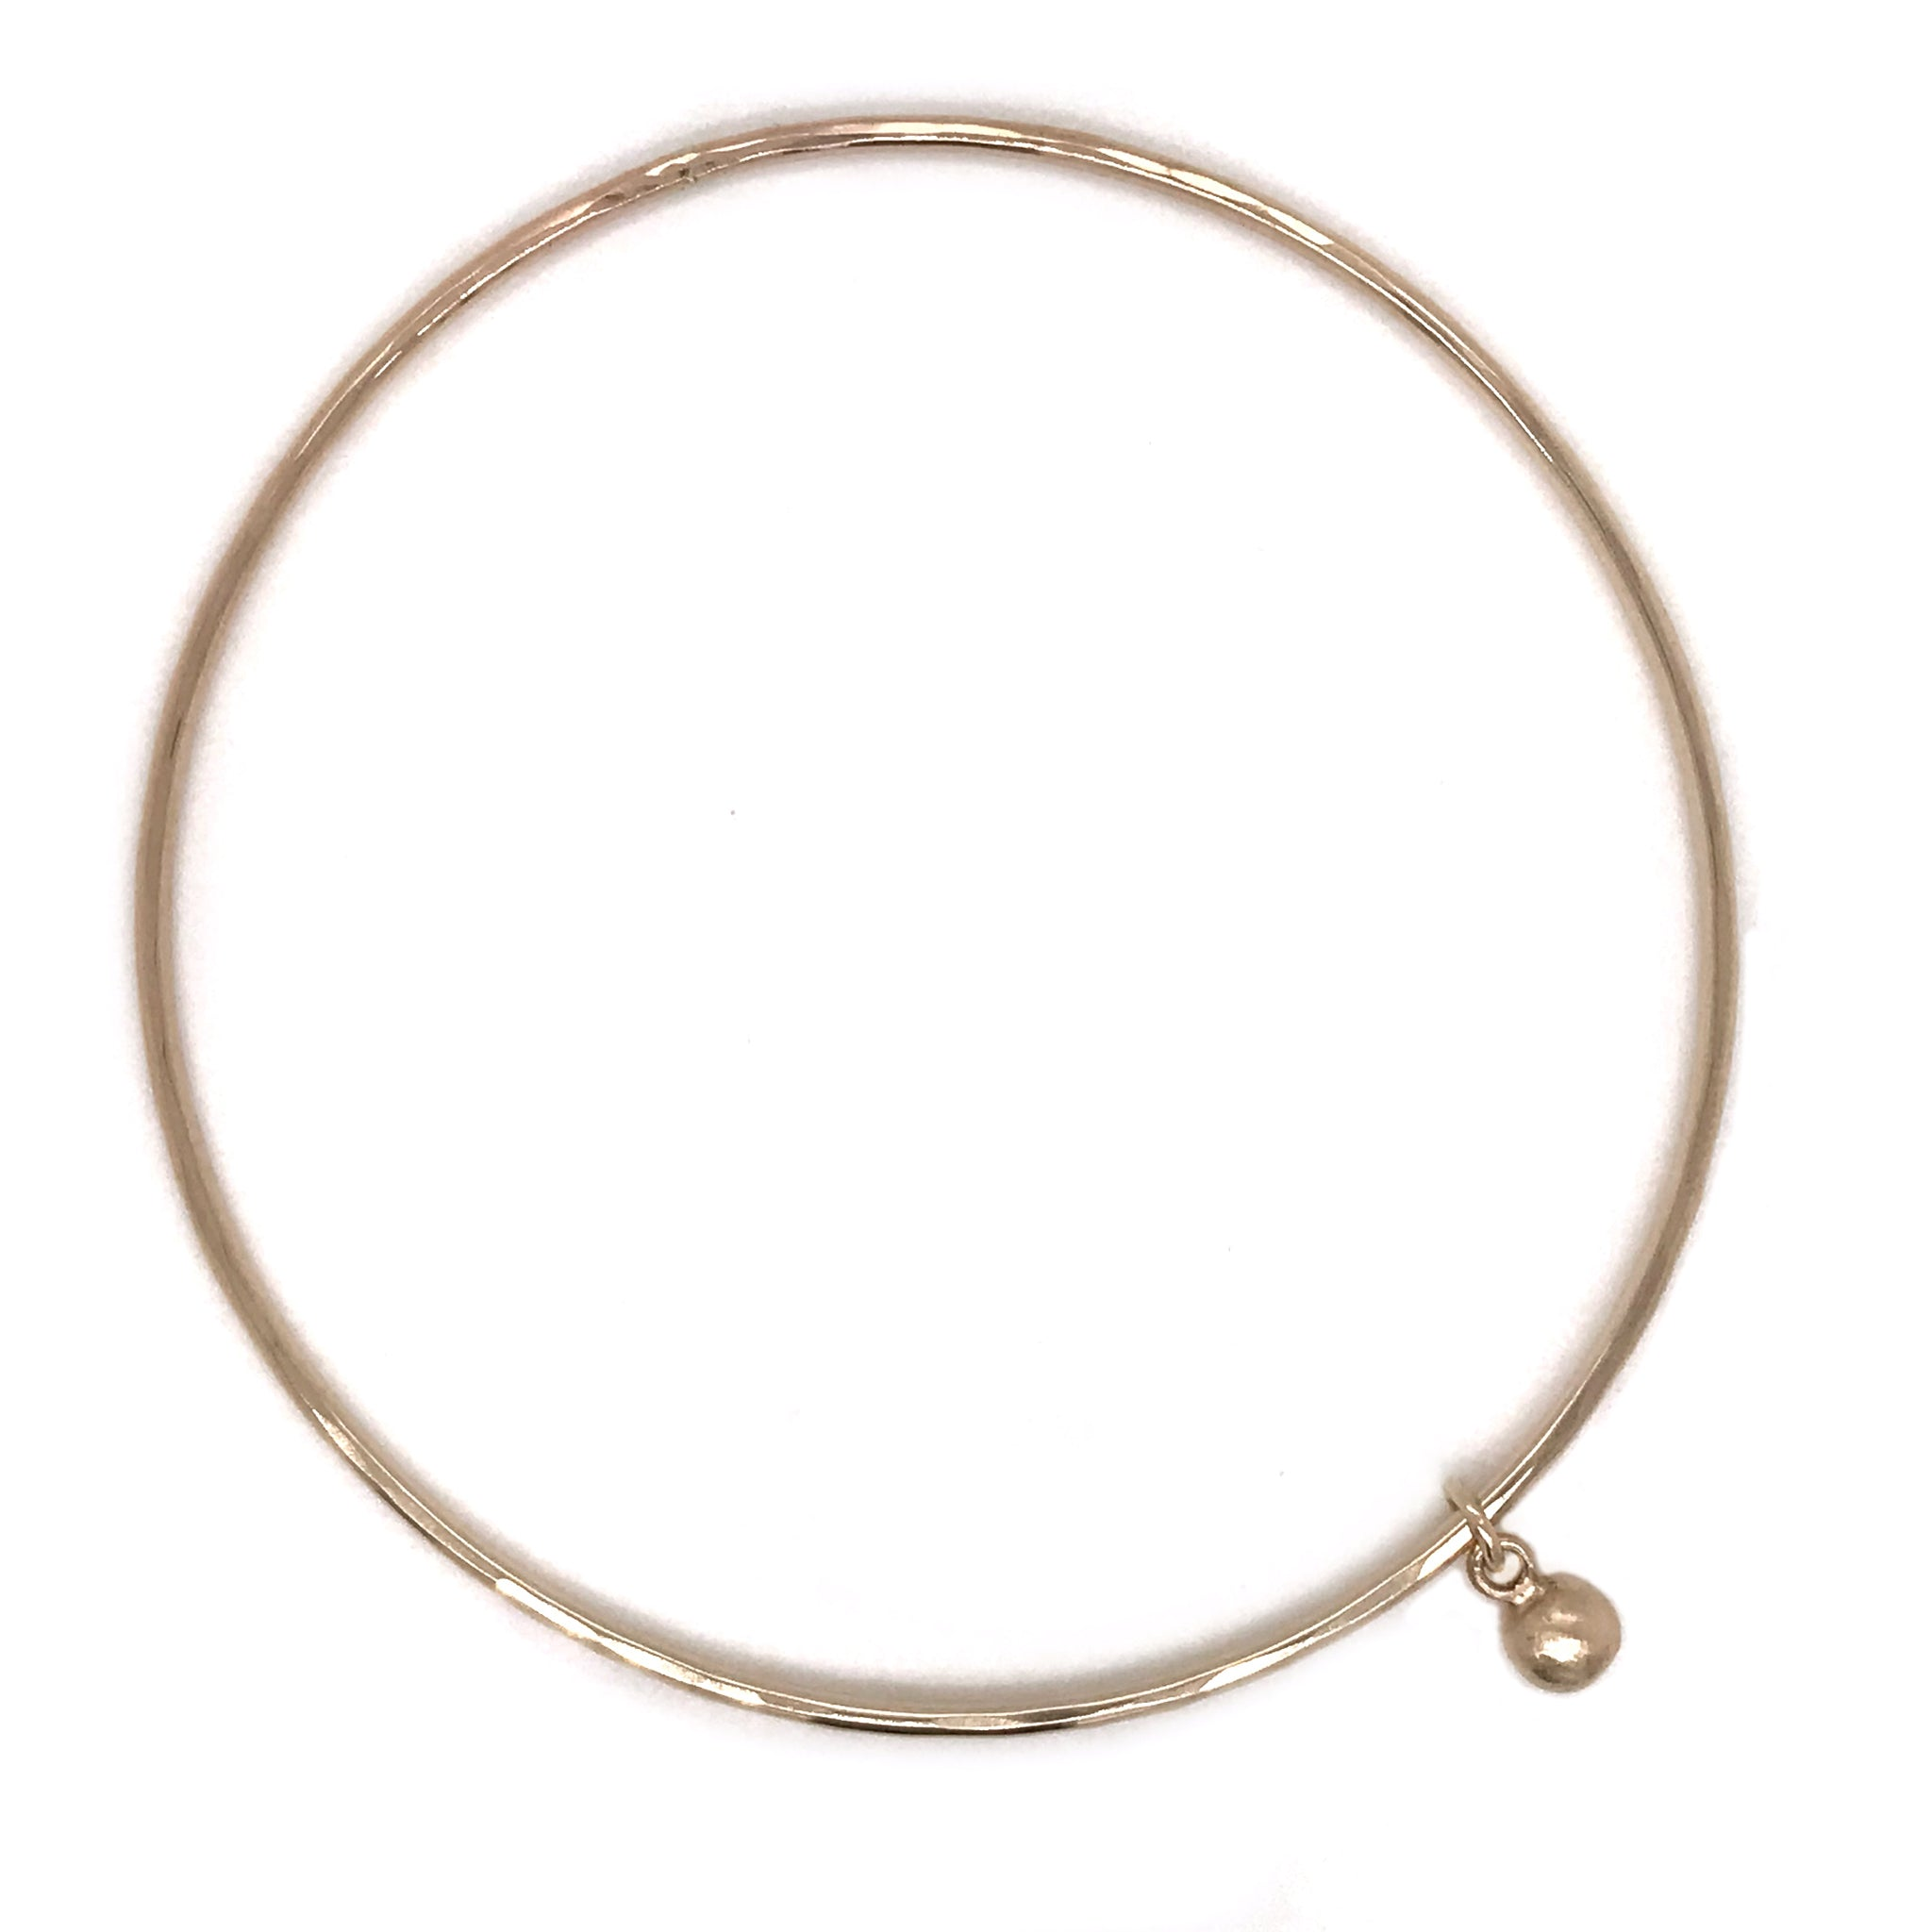 gold bangle with pebble charm kriket broadhurst christmas gifts for women Sydney